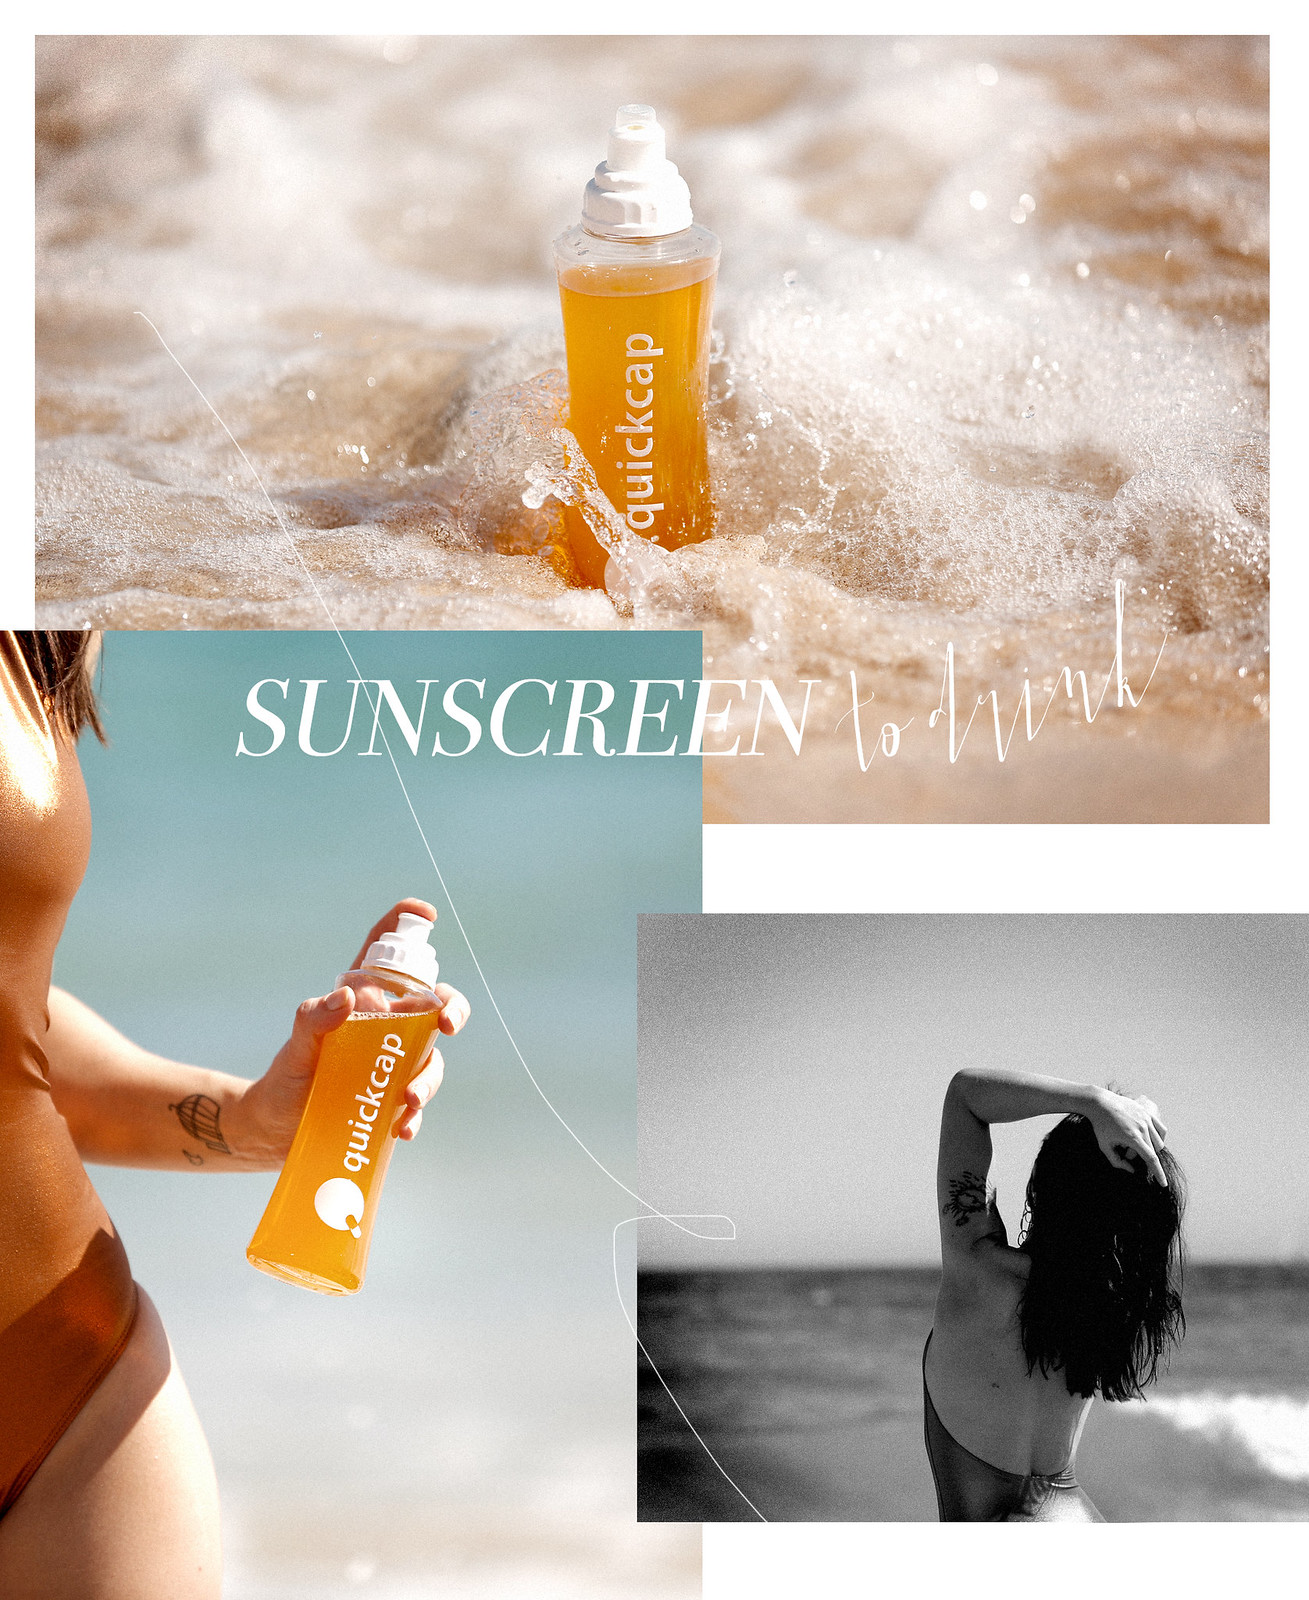 quickcap sun beauty swimming sea sunscreen beautyblogger skincare orthomol apothecary shopping douglas onlineshop schönheit germanblogger cats & dogs fashionblog beach bikini babe ricarda schernus düsseldorf modeblog 2